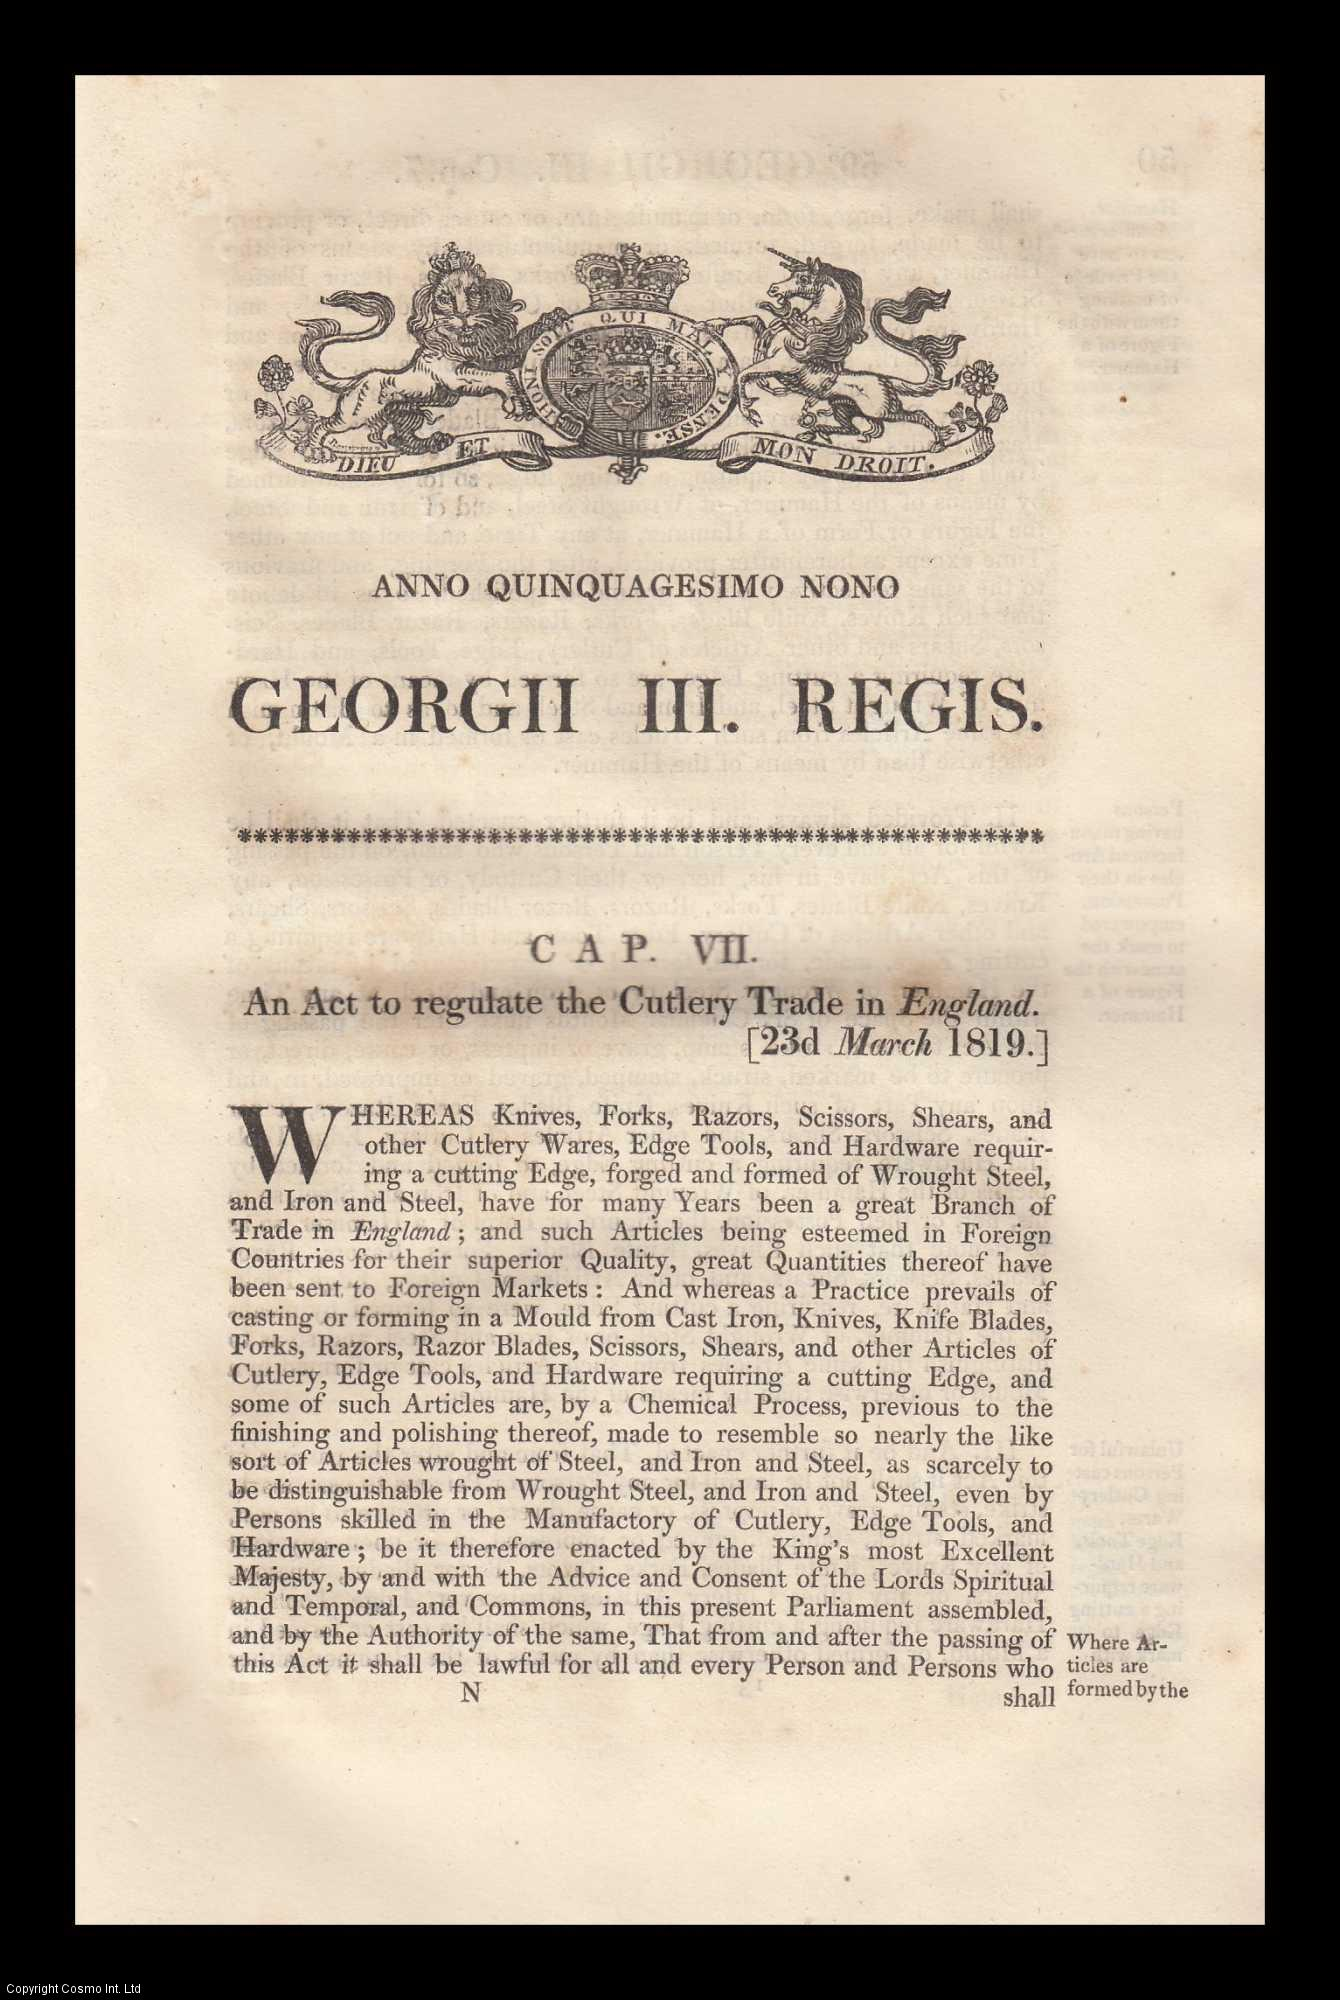 KING GEORGE III - Cutlery Trade Act 1819 (c.7. 59 Geo. 3). An Act to Regulate the Cutlery Trade in England.